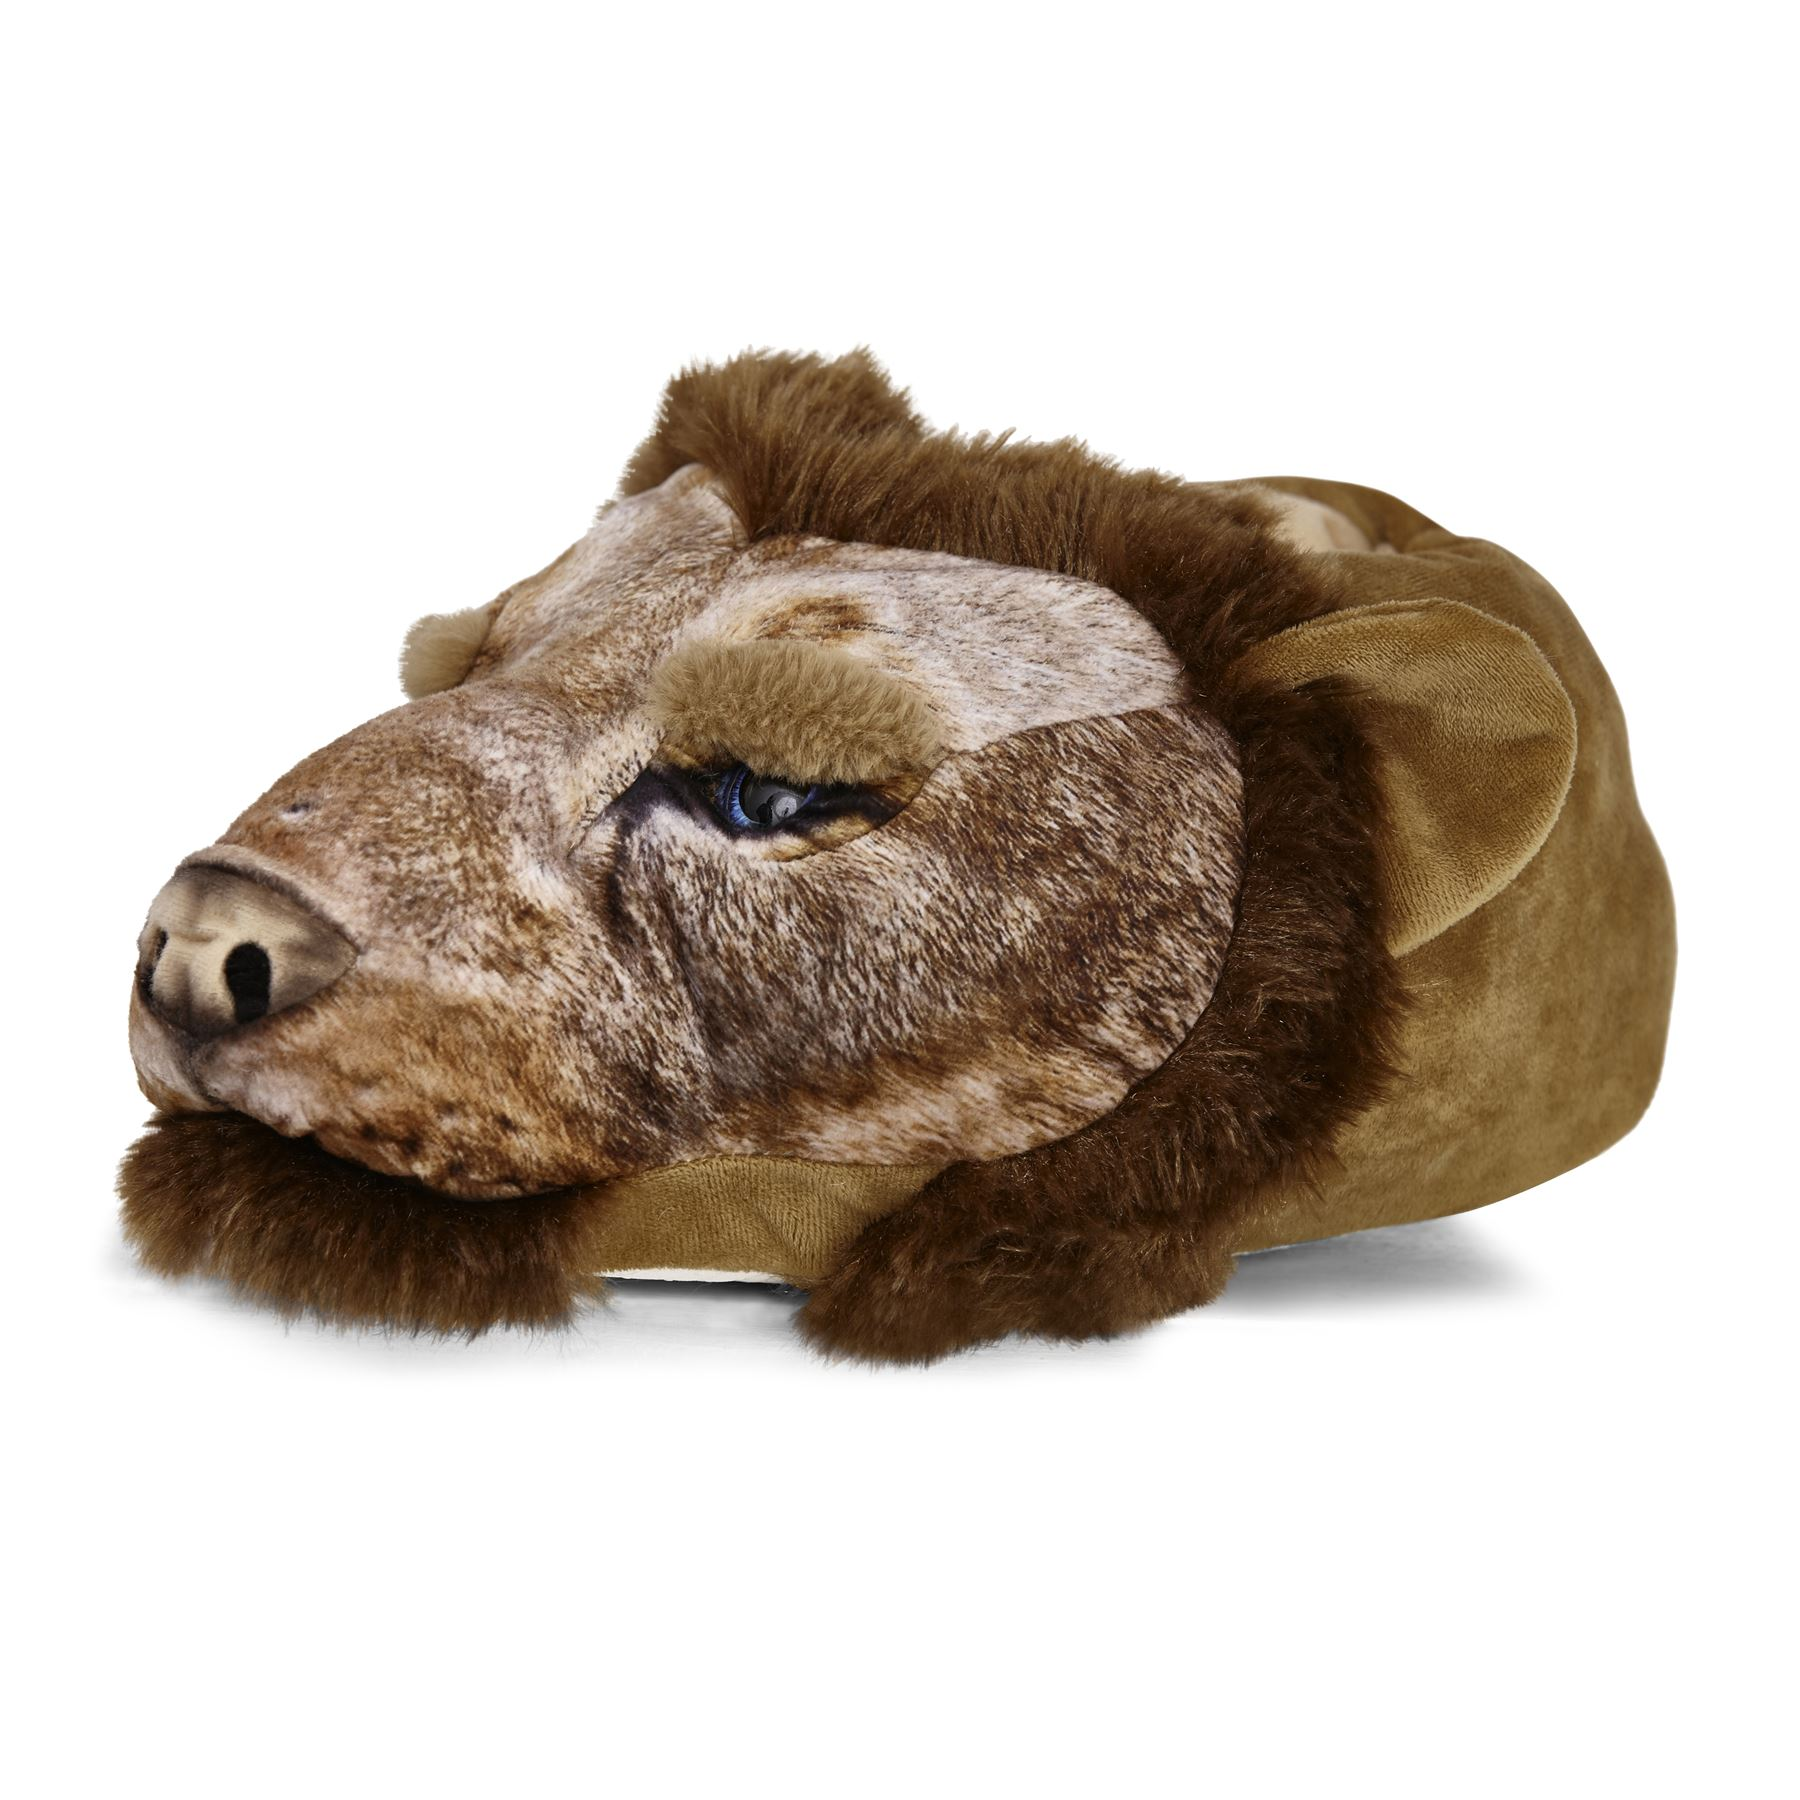 Mens-Undercover-3D-Soft-Comfy-Character-Novelty-Animal-Monster-Feet-Slippers thumbnail 9